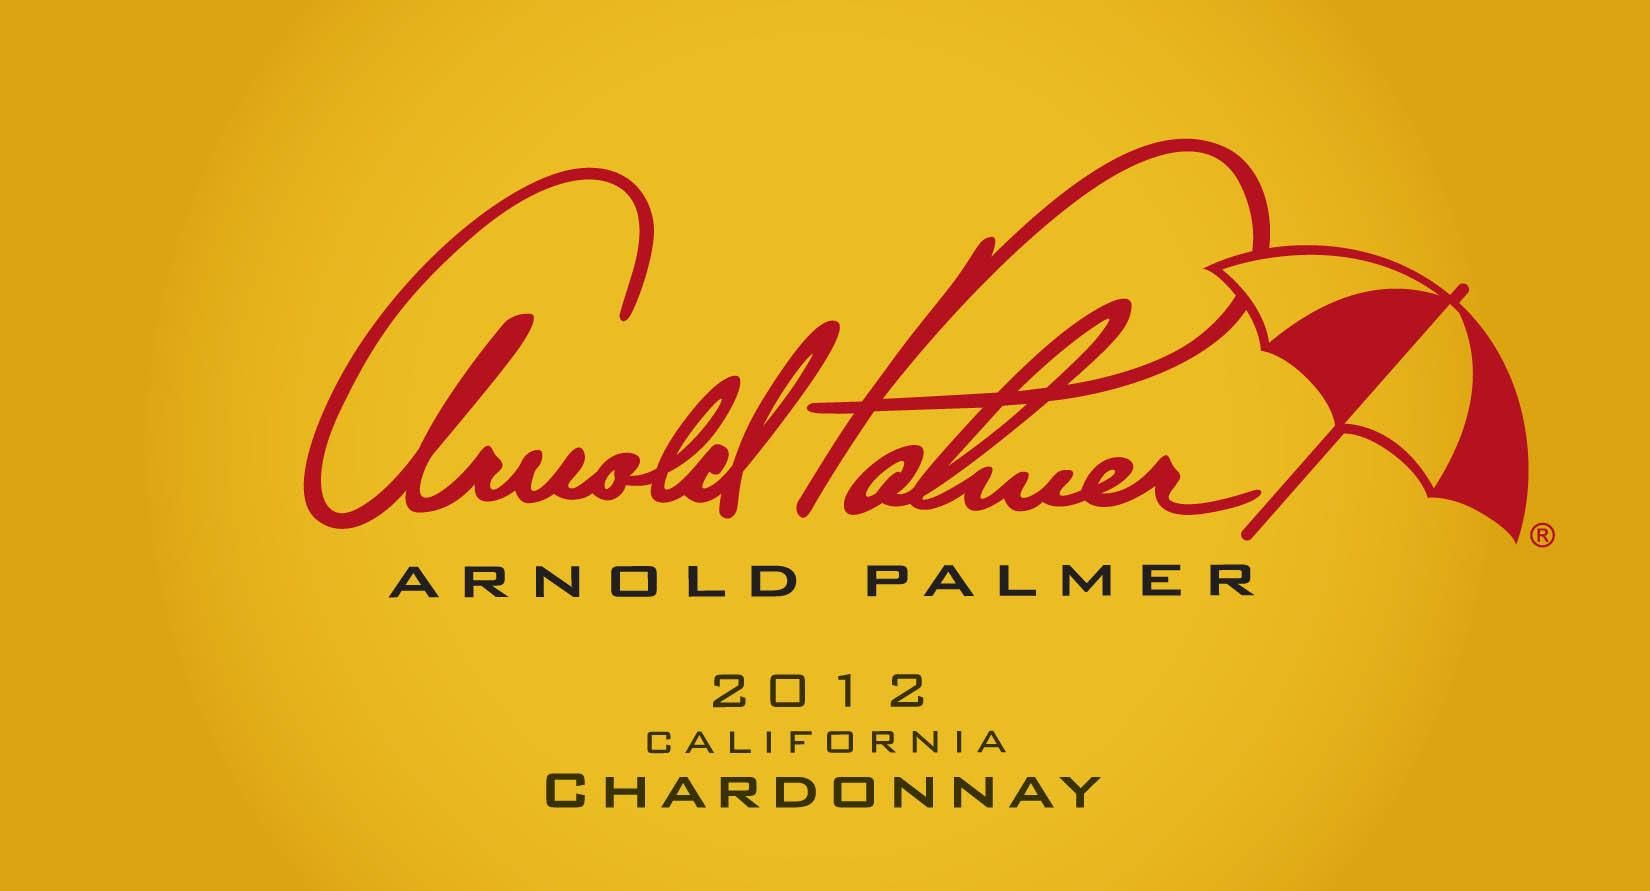 Arnold Palmer Chardonnay 2012 Front Label